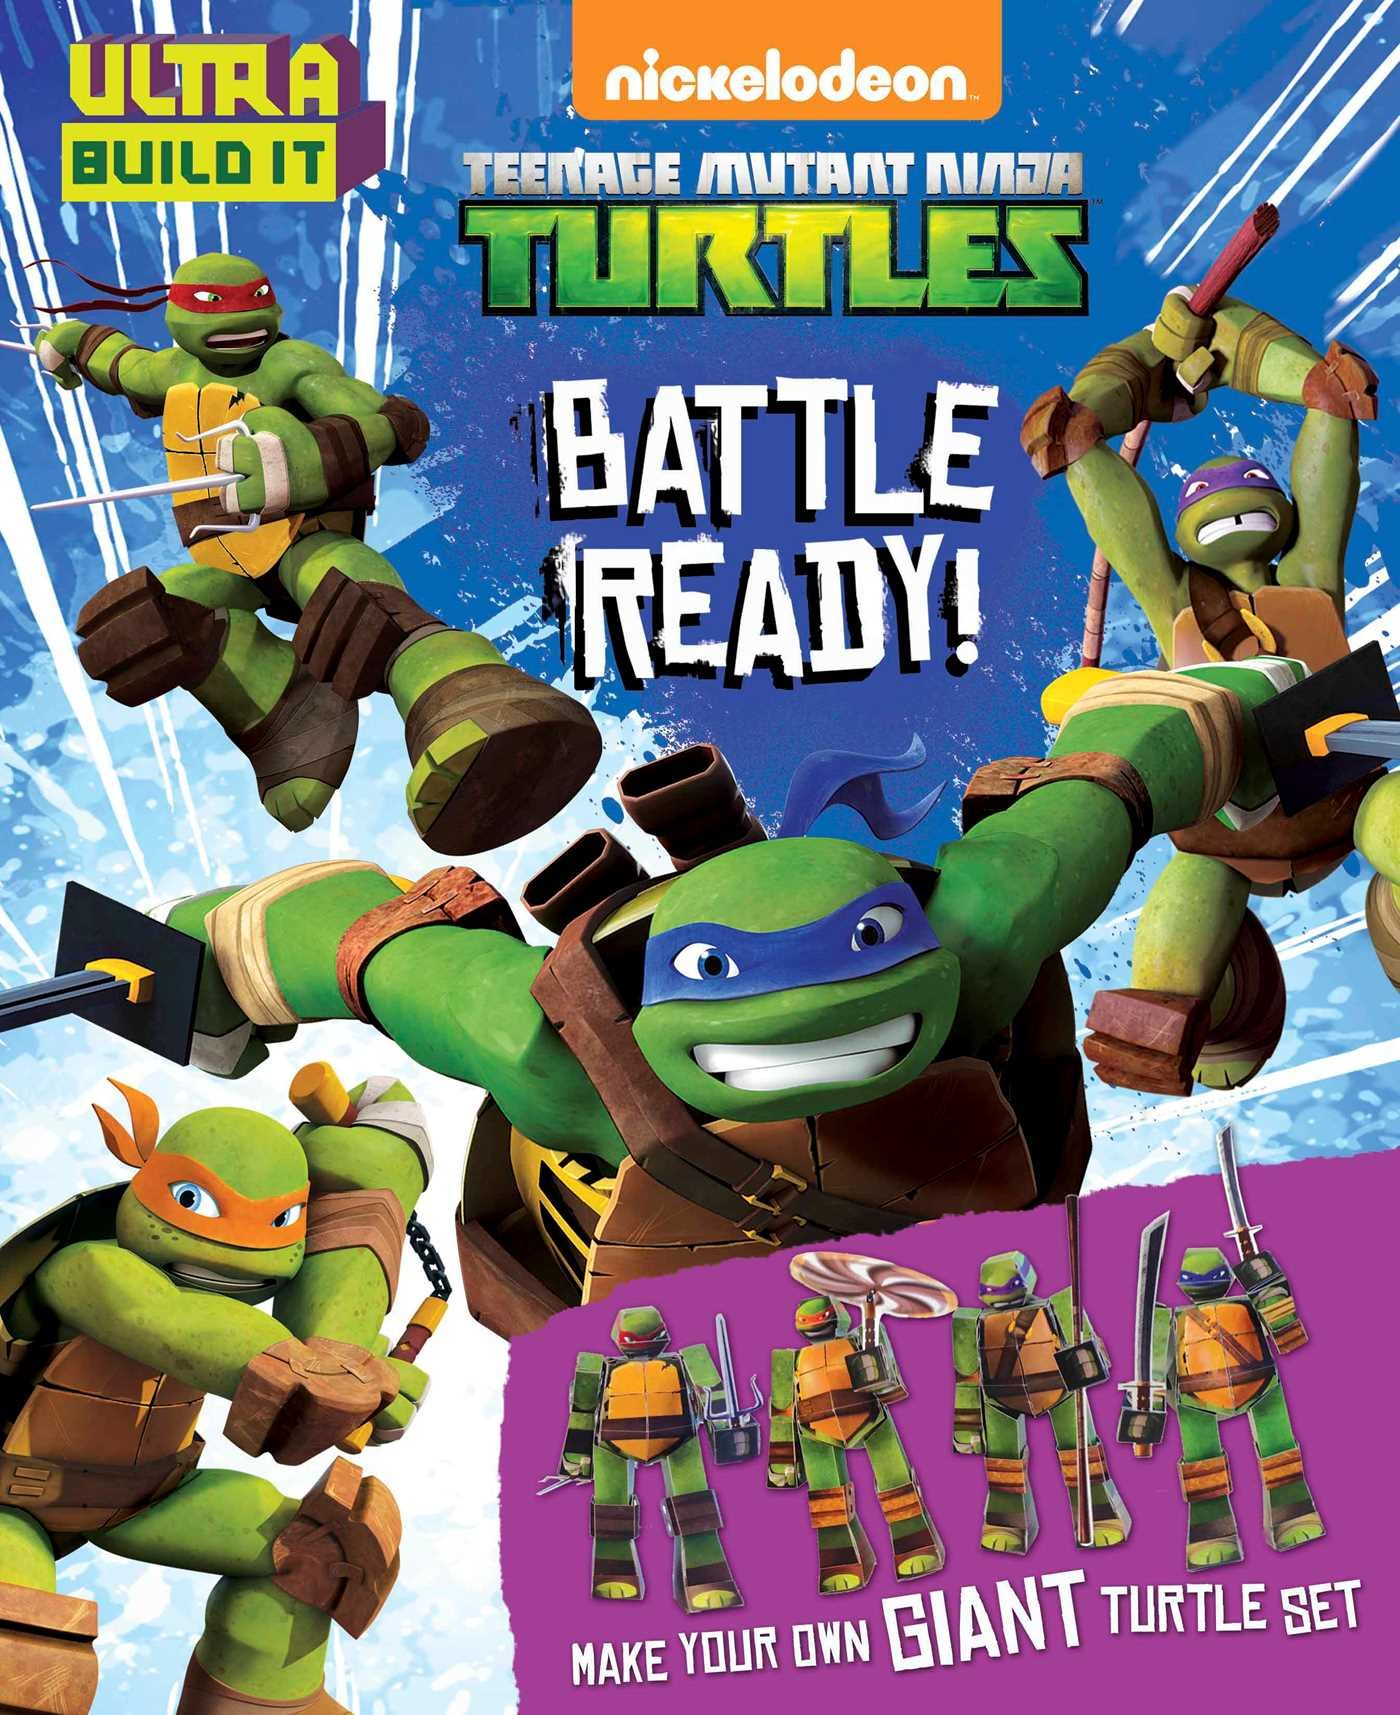 Teenage Mutant Ninja Turtles: Battle Ready! (Ultra Build It) PDF